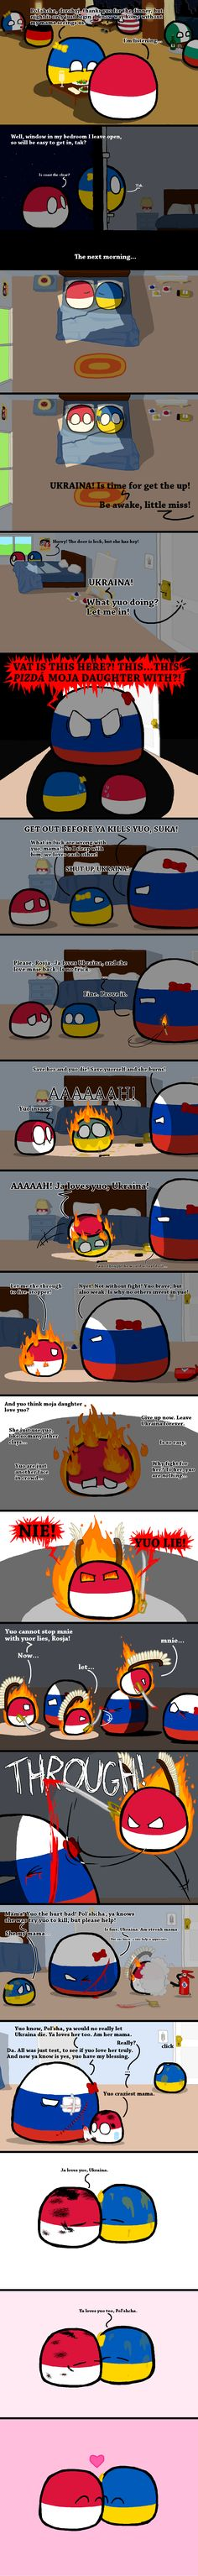 """Love in the Time of Mother Russia"" by aureisyourfriend in polandball"